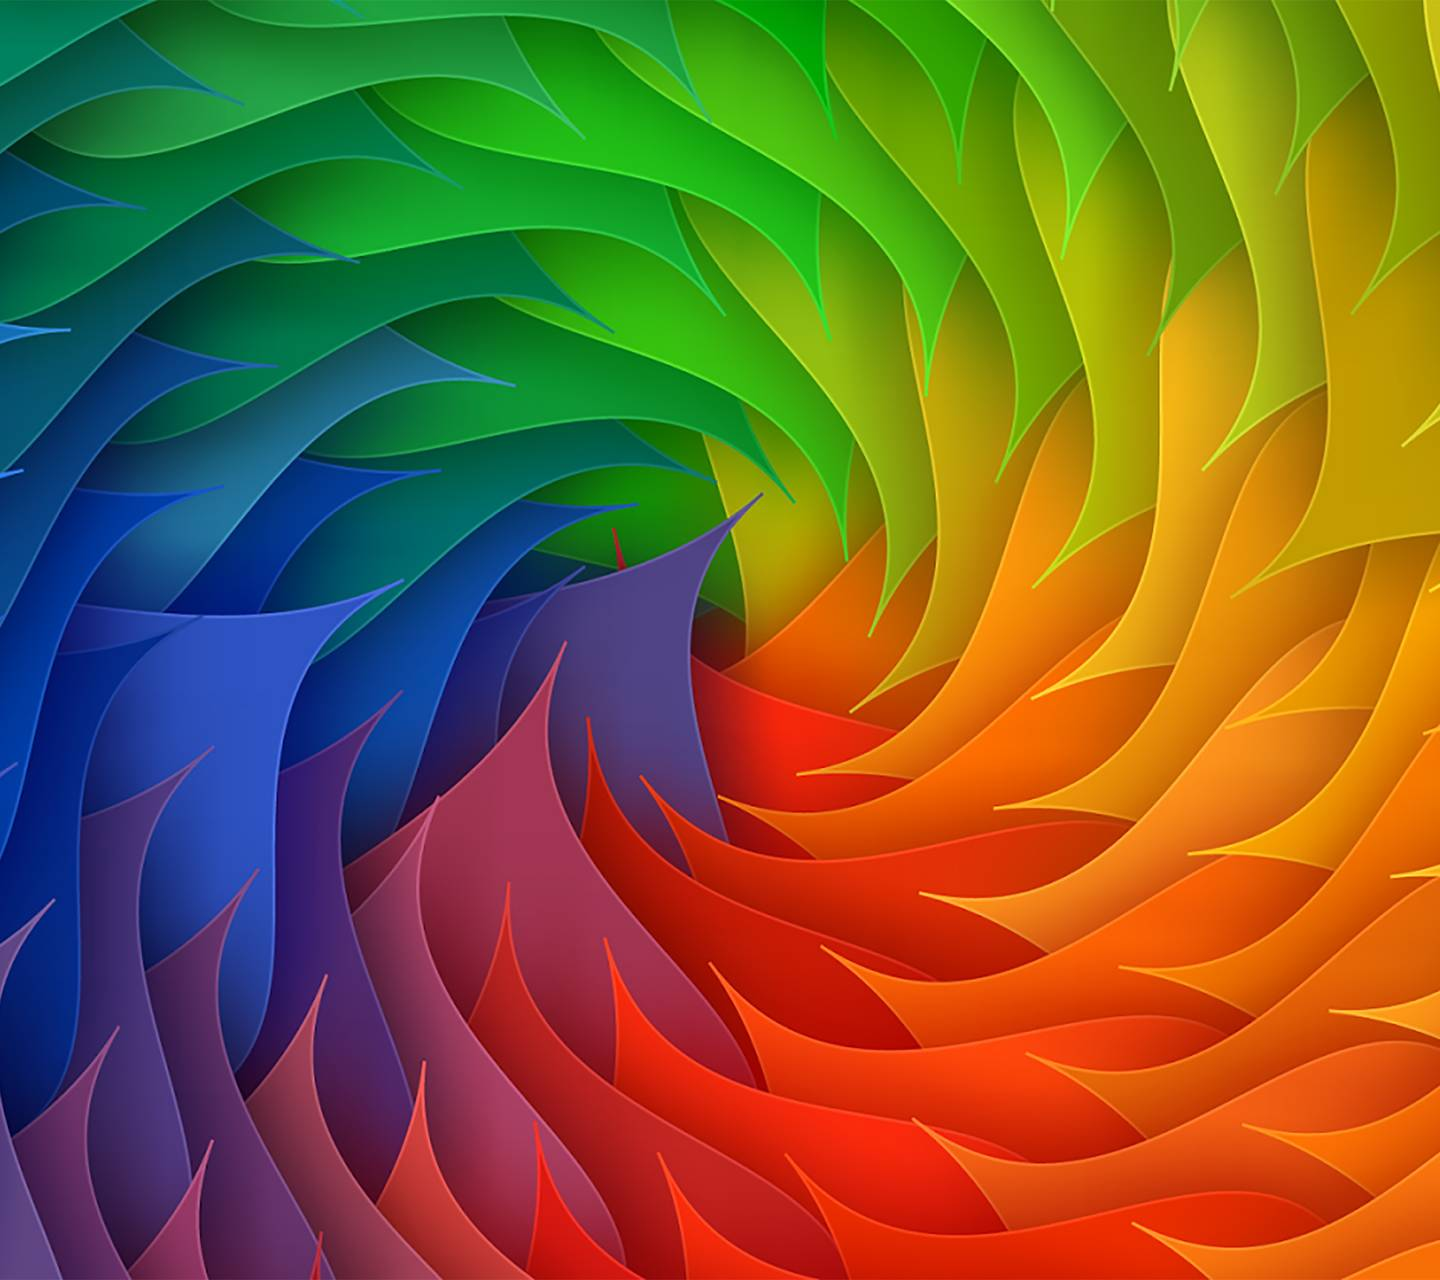 whirlwind colors 1